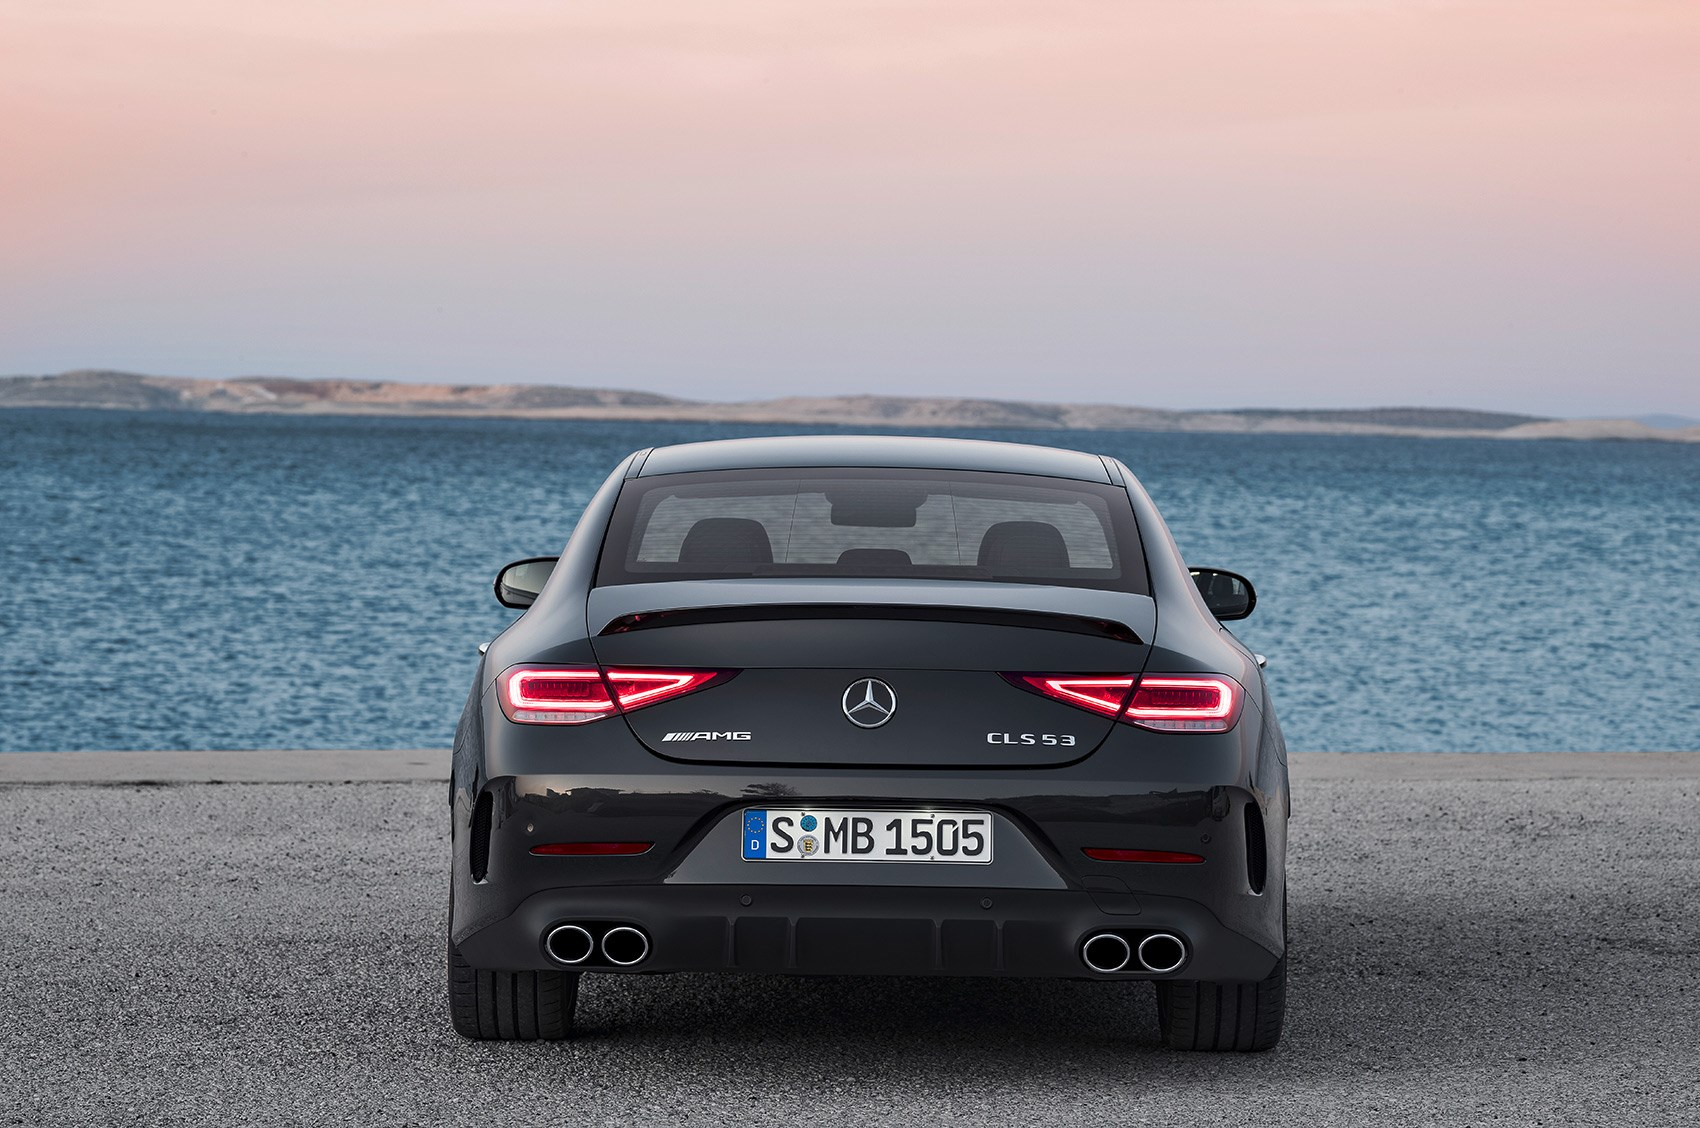 New Mercedes Amg Cls 53 4matic E53 4matic Coupe And Cabriolet Pictures News Prices Specs on maybach cabriolet